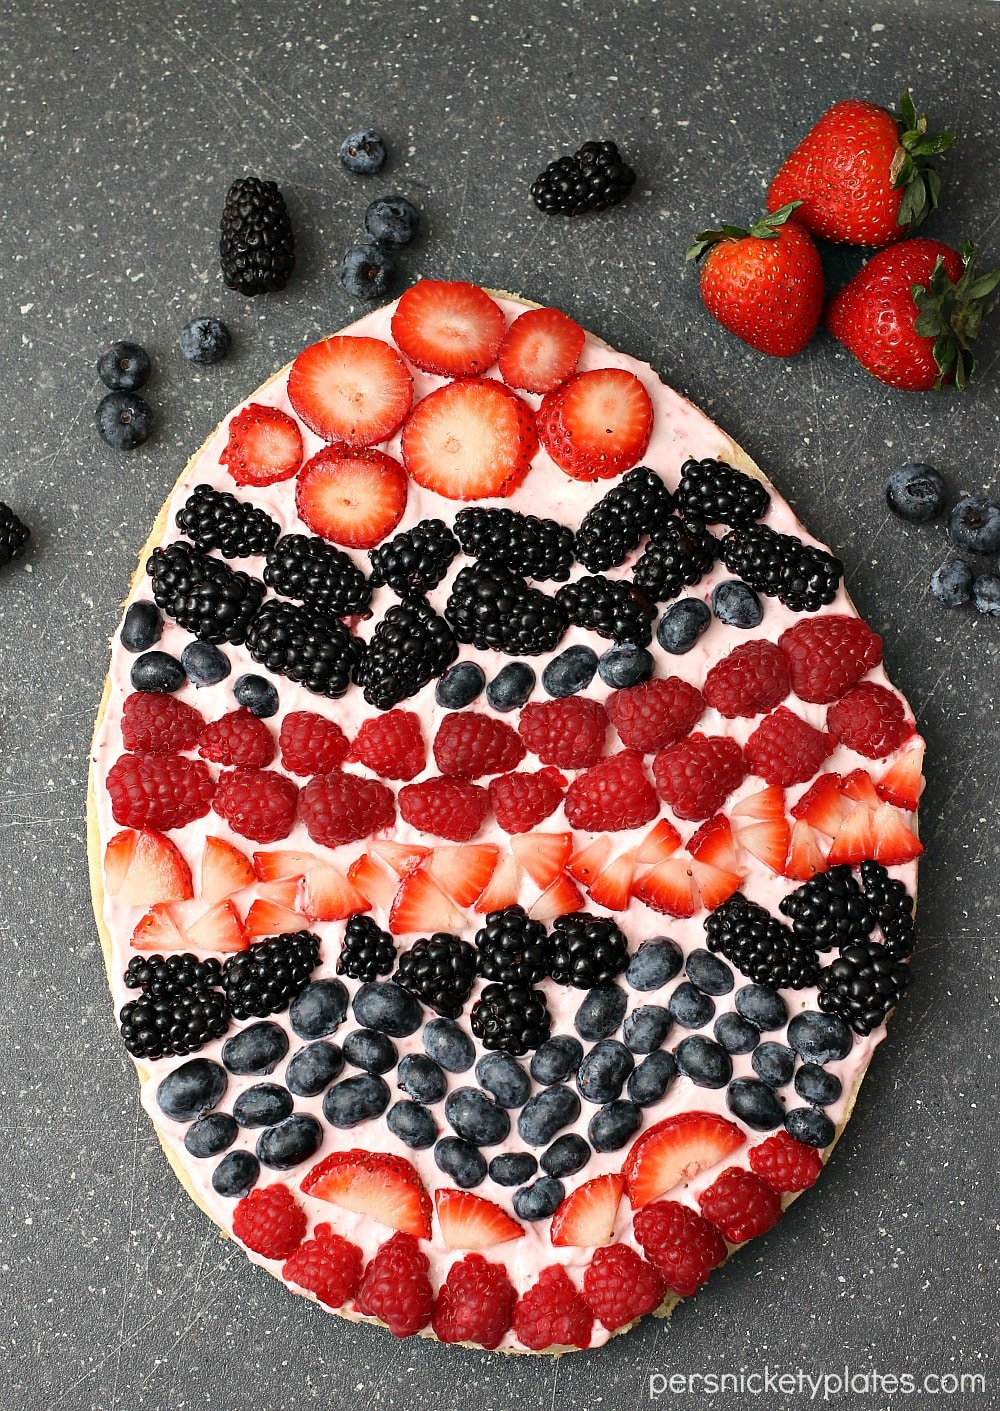 Fruit Pizza in the shape of an easter egg, with fruit forming stripes